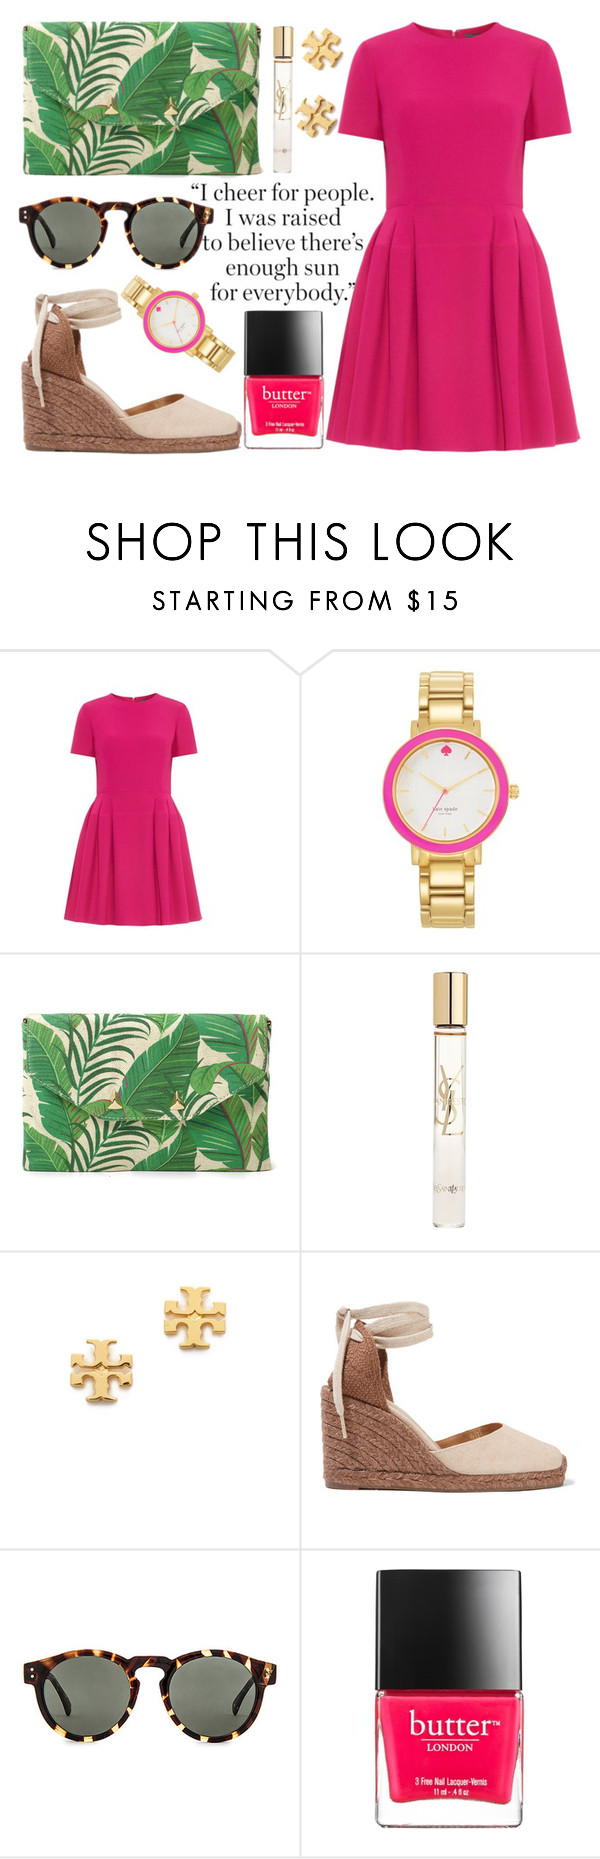 """""""Thank You For 500"""" by poshandy ❤ liked on Polyvore featuring Alexander McQueen, Kate Spade, Stella & Dot, Yves Saint Laurent, Tory Burch, Castañer, Komono, Butter London, Summer and preppy"""